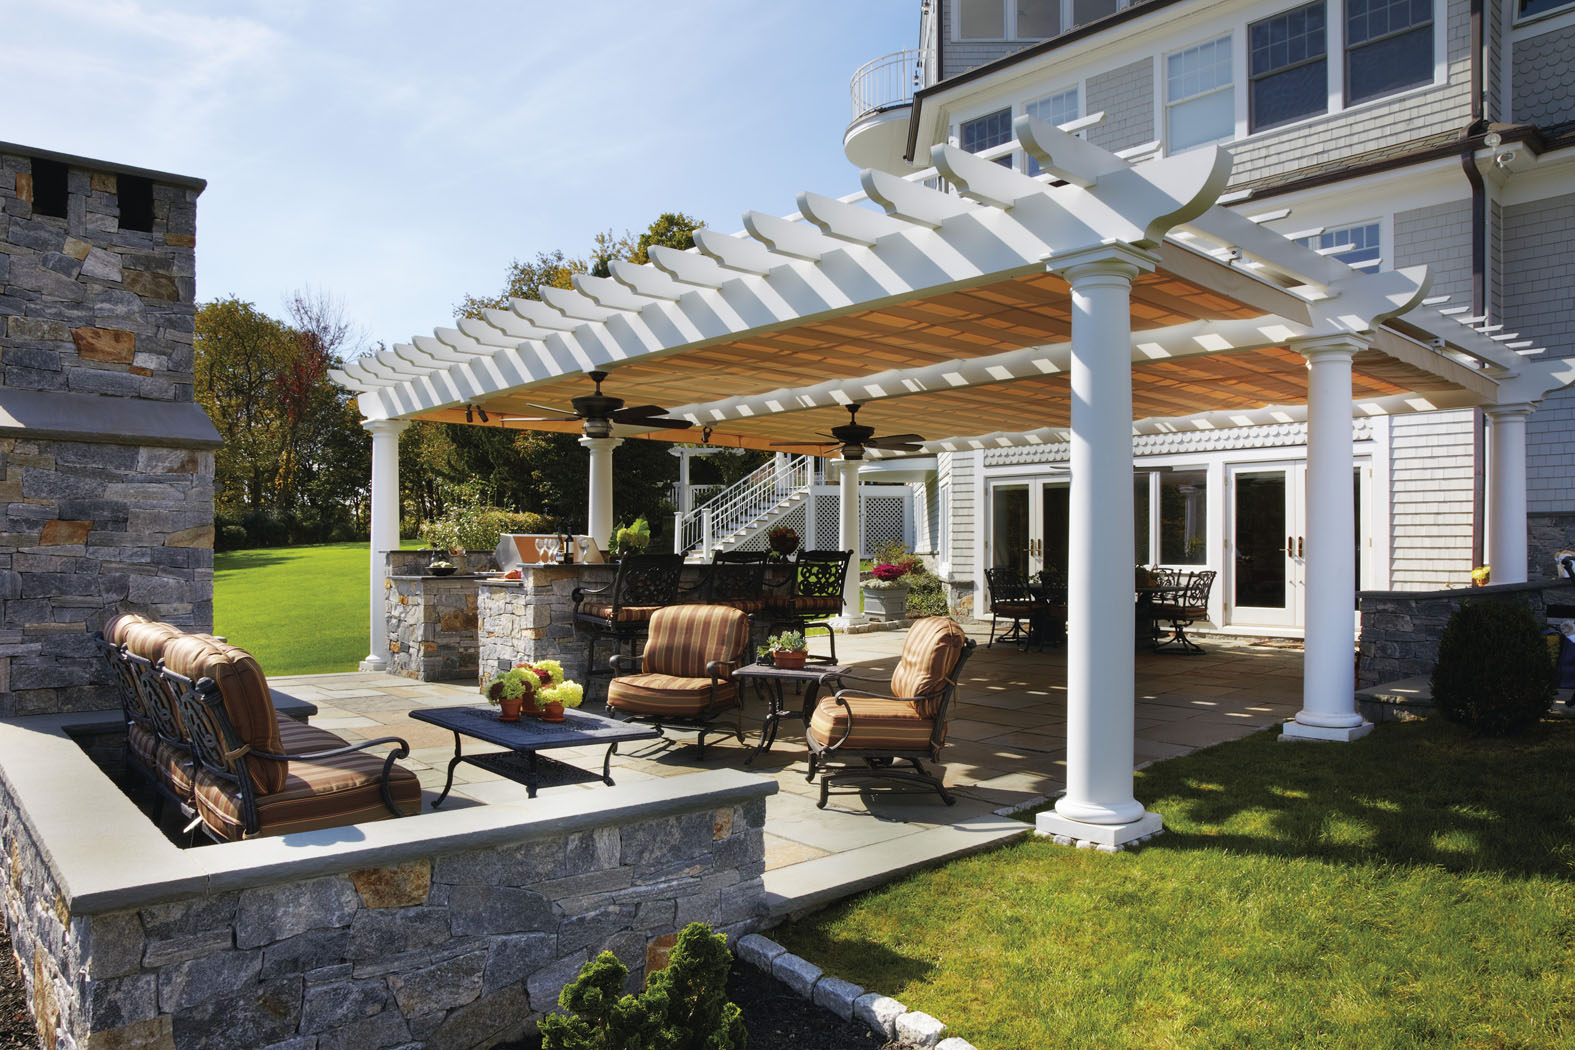 1575x1050px 7 Charming Pergola Canopy Picture in Others